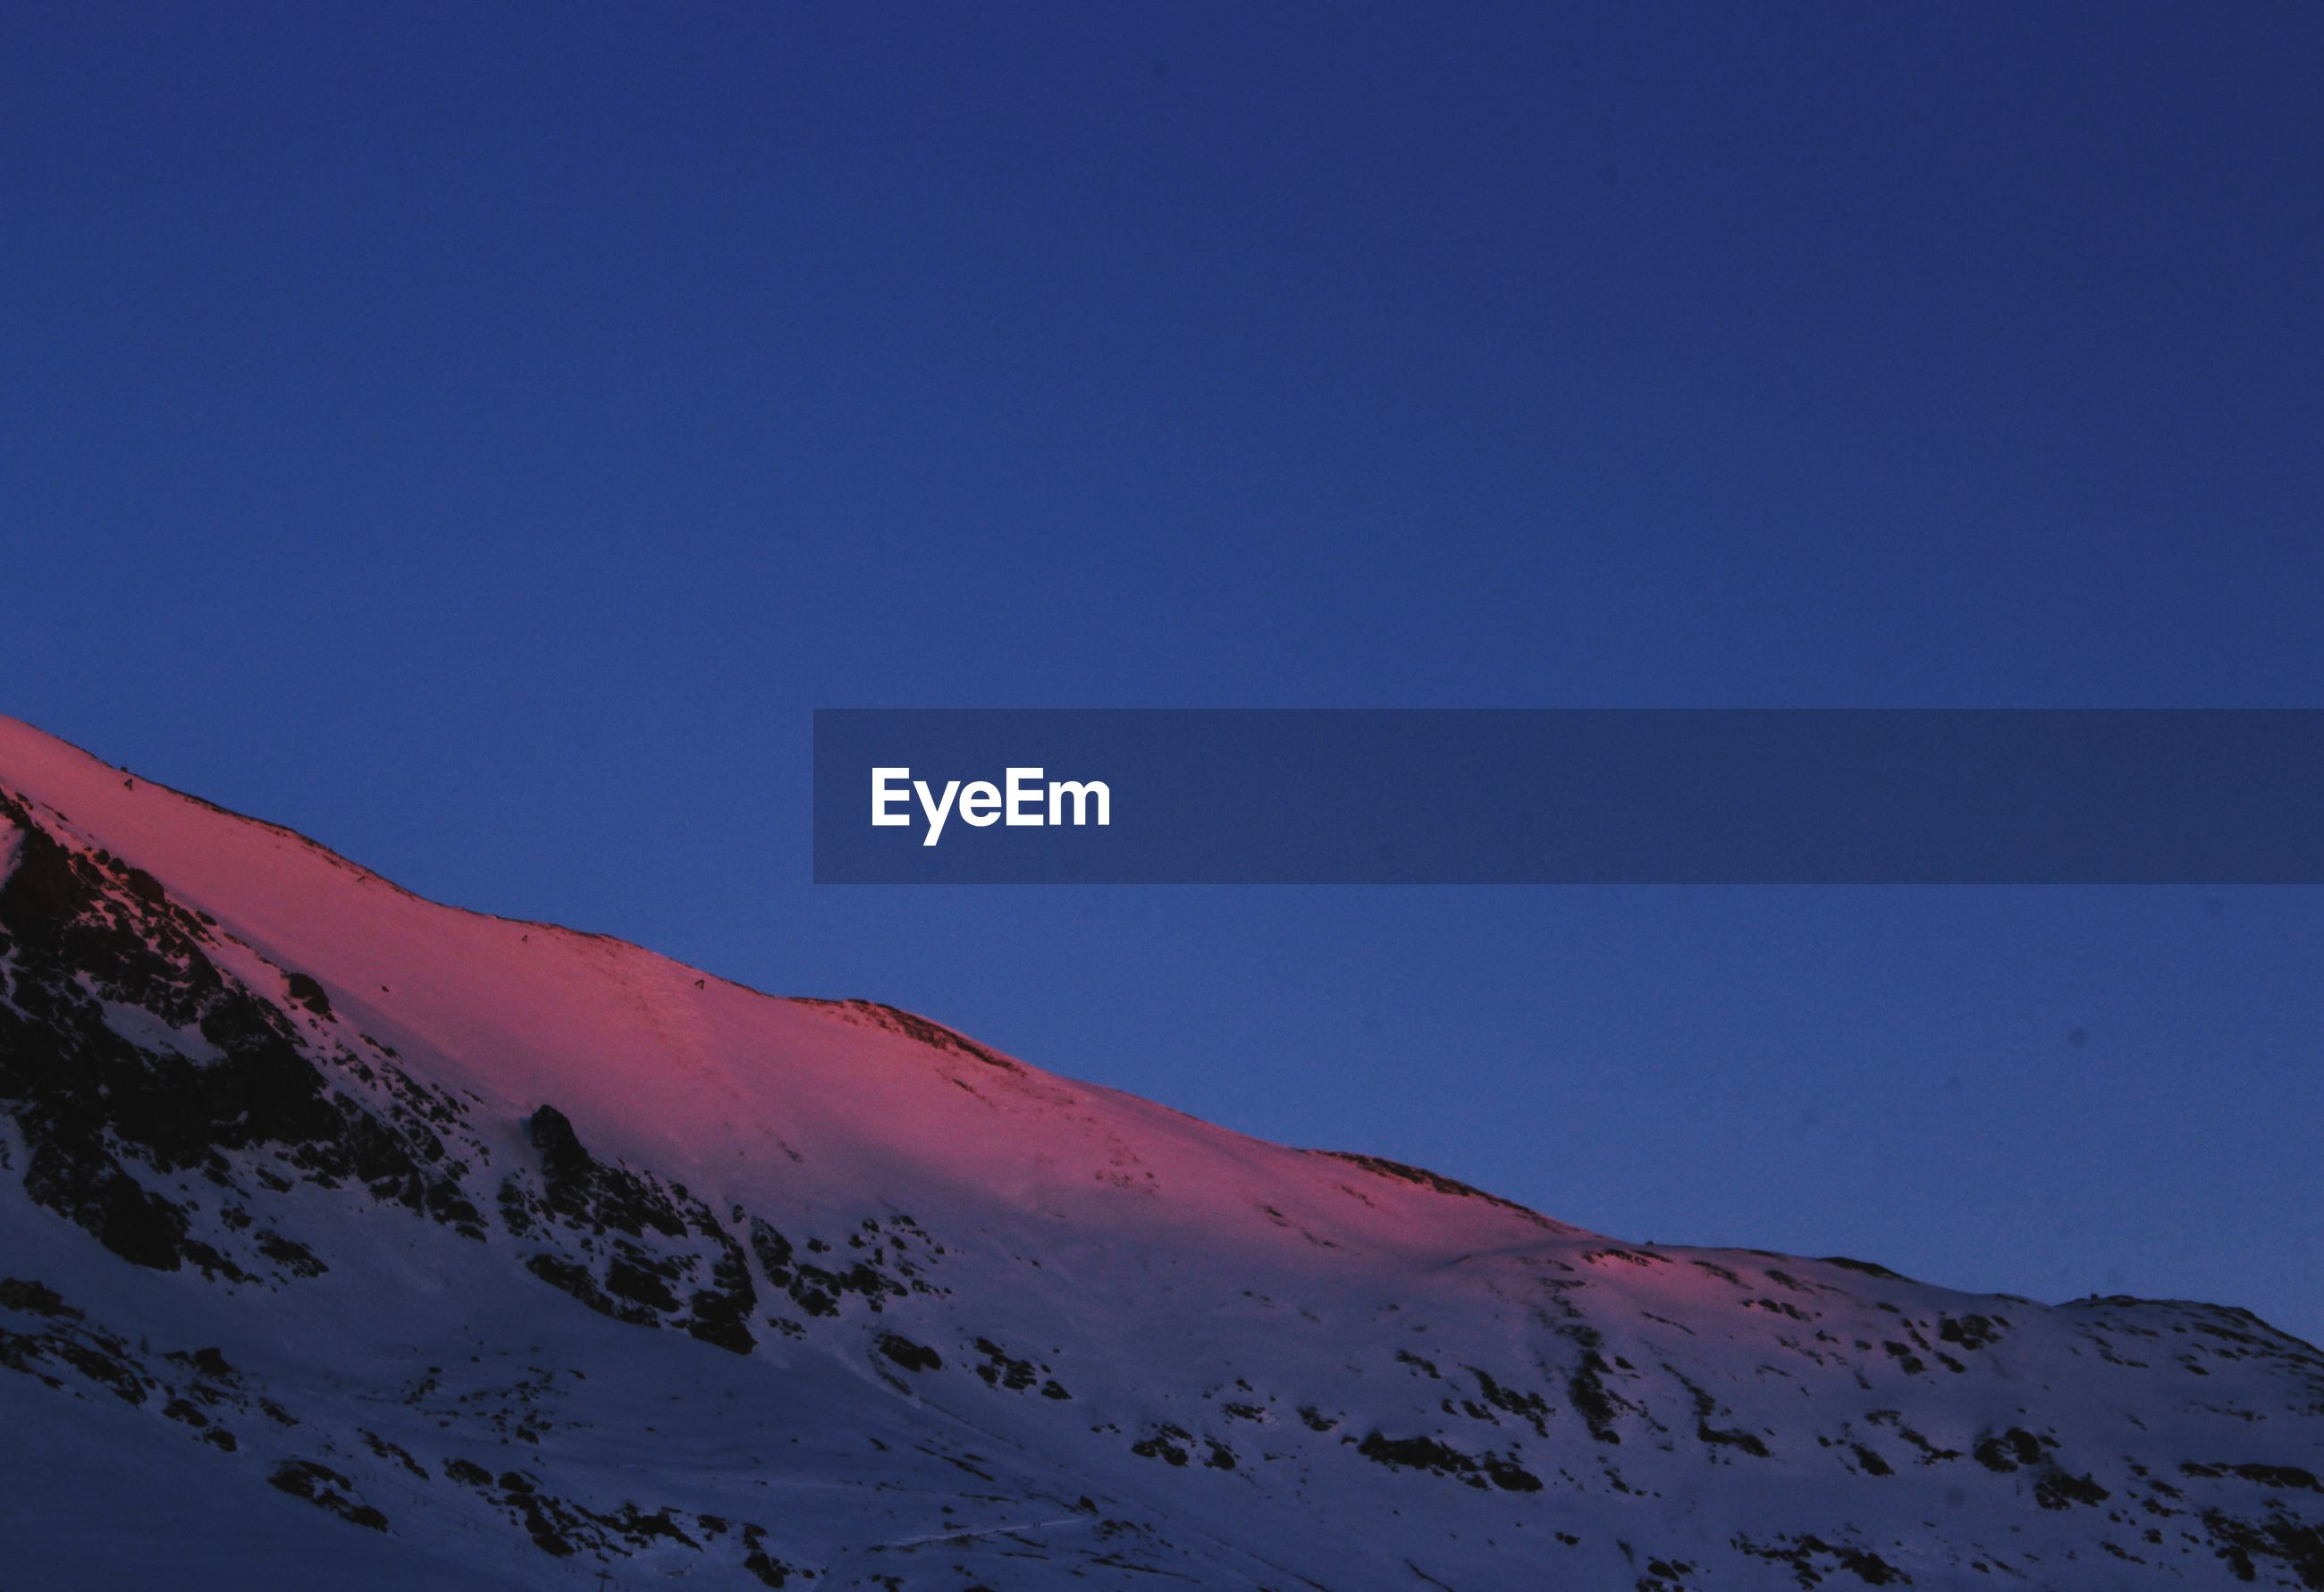 SCENIC VIEW OF SNOWCAPPED MOUNTAINS AGAINST CLEAR BLUE SKY DURING WINTER